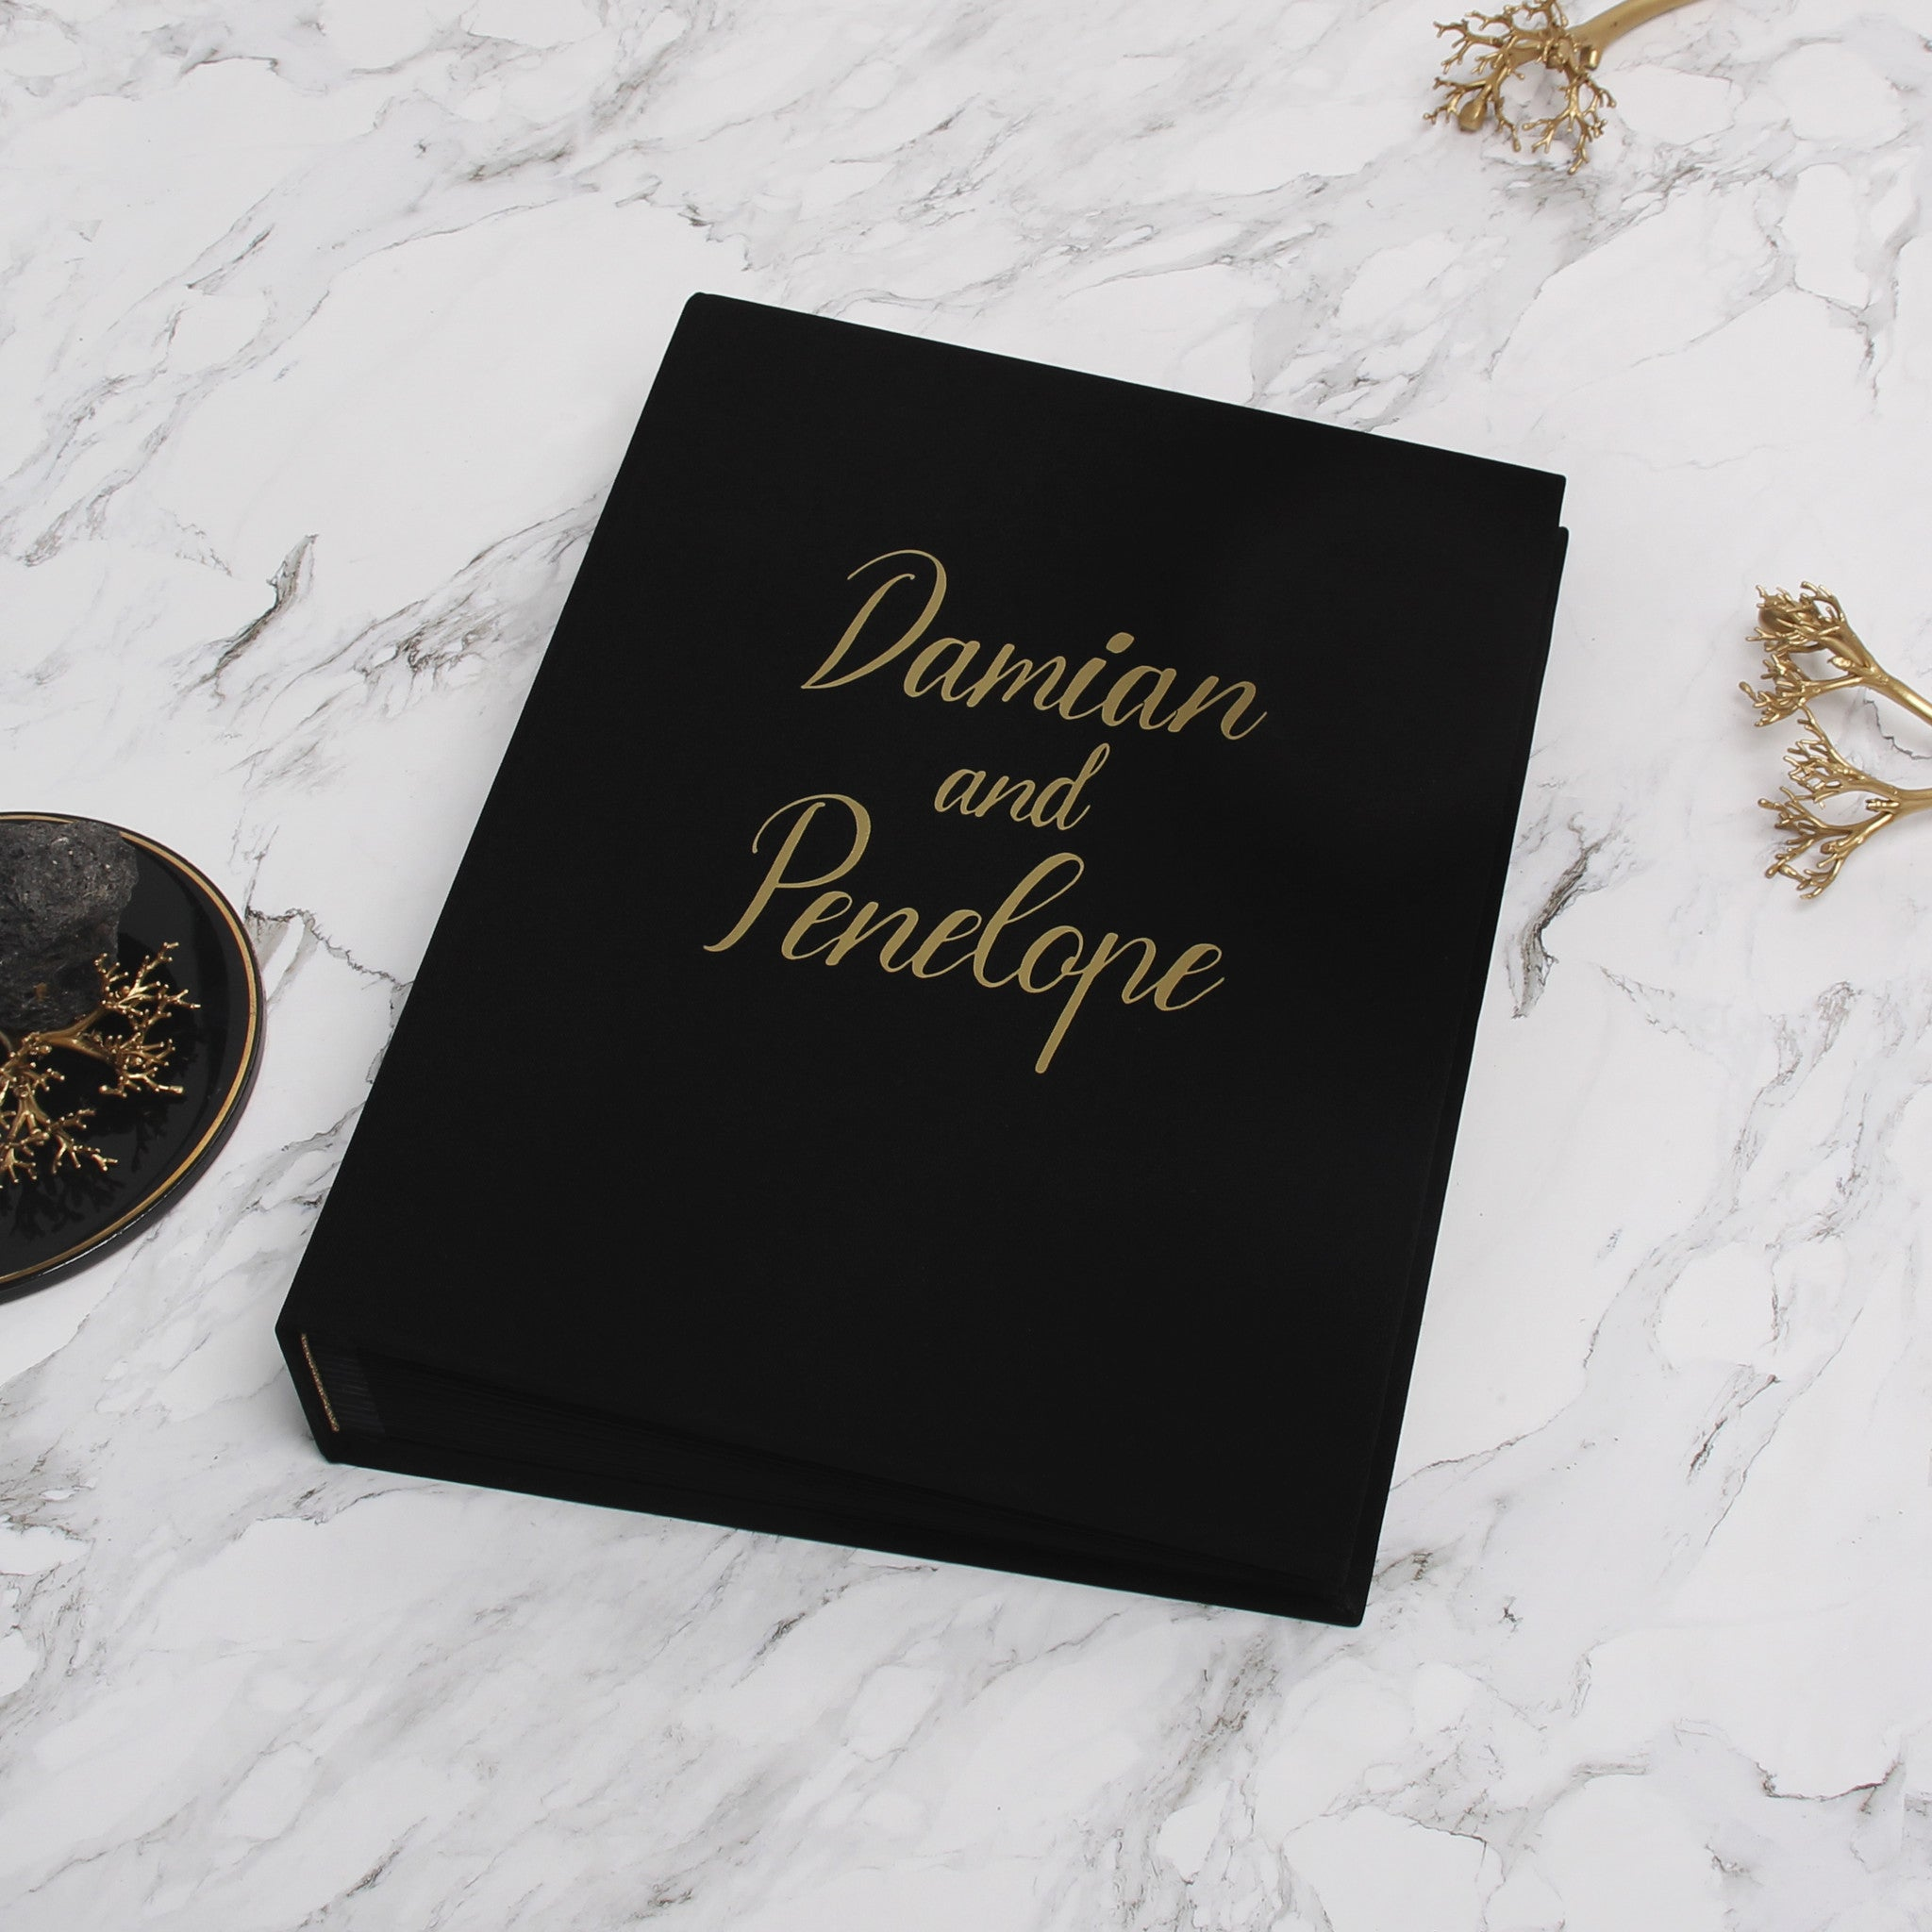 Photo Booth Wedding Guest Book Album Black with Gold Lettering Black Pages - Liumy